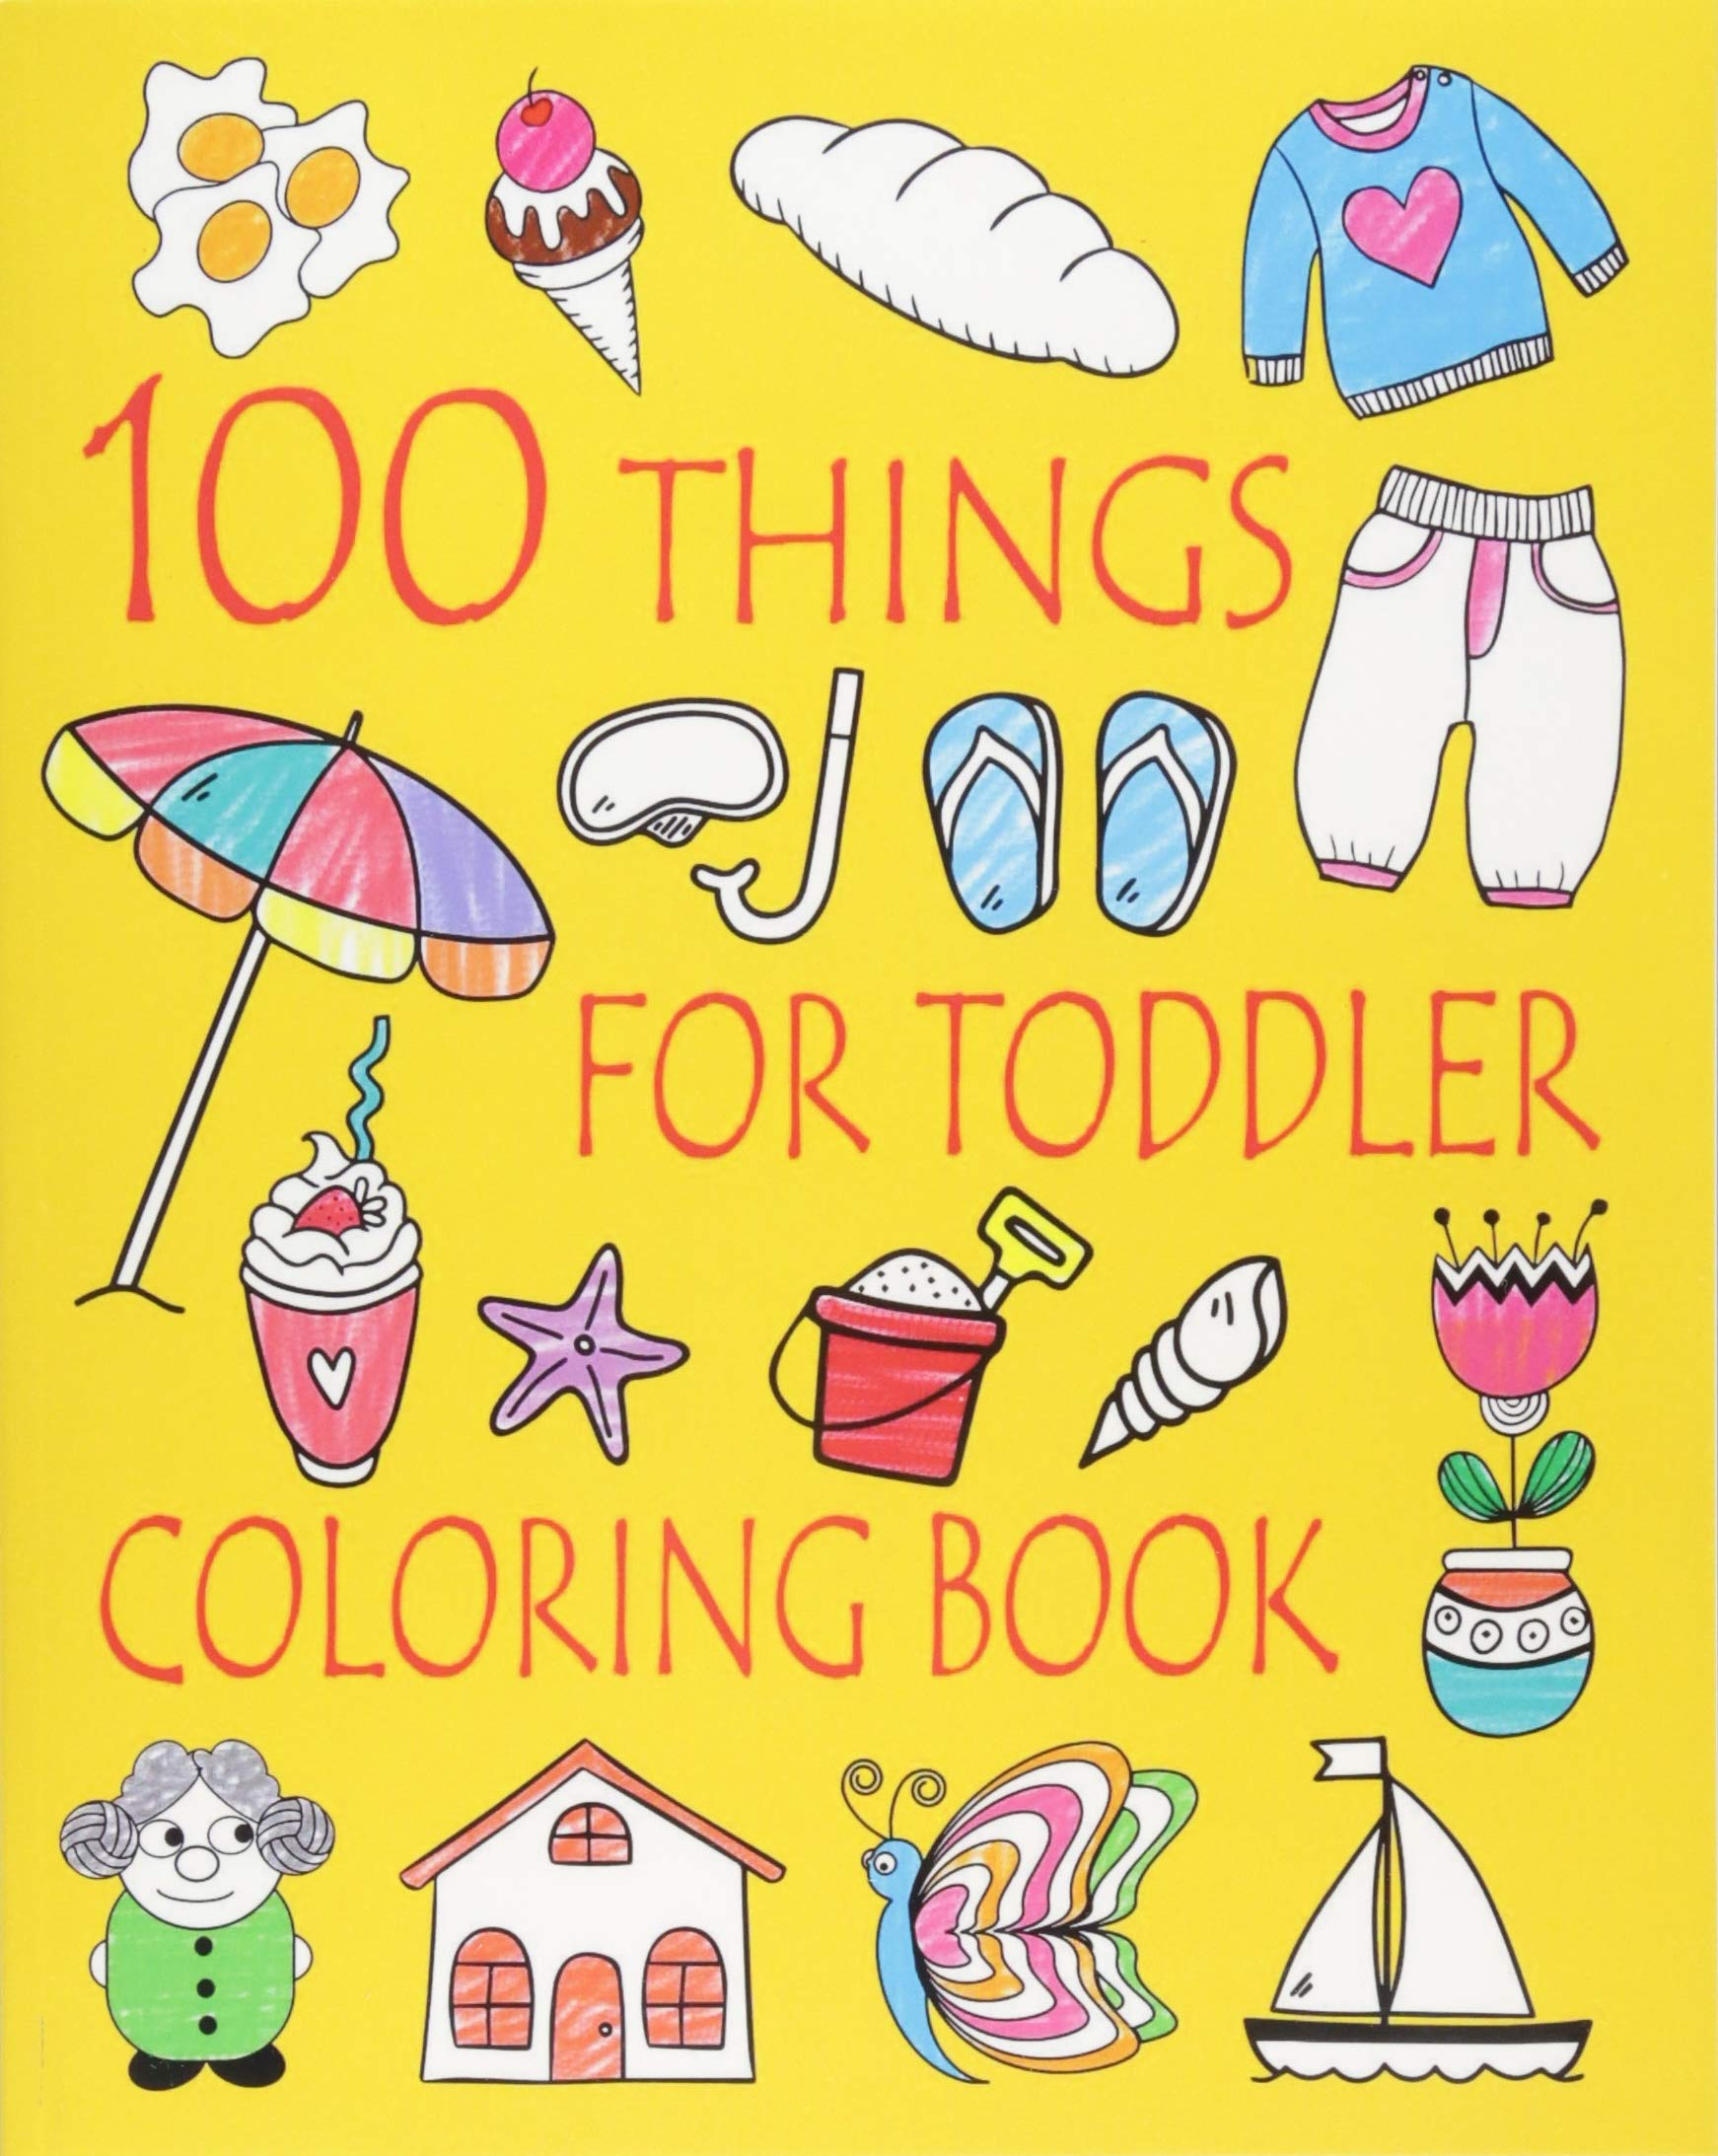 - 100 Things For Toddler Coloring Book: Easy And Big Coloring Books